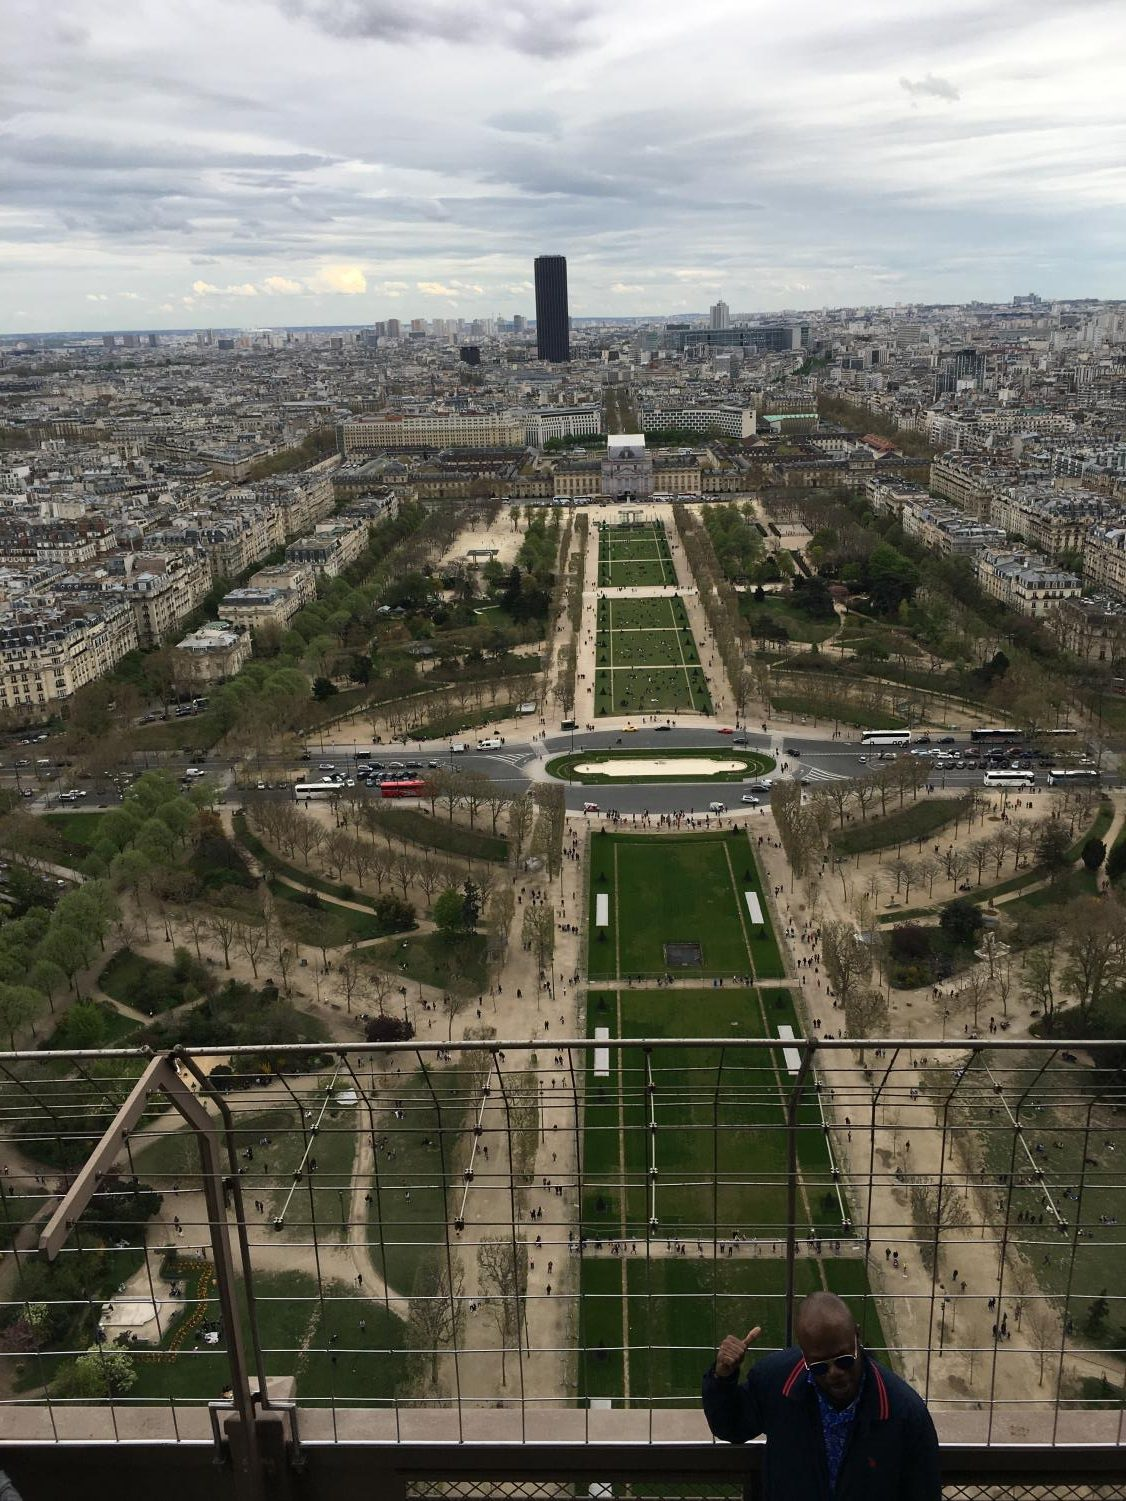 My view of the city of Paris from the top of the Eiffel Tower.